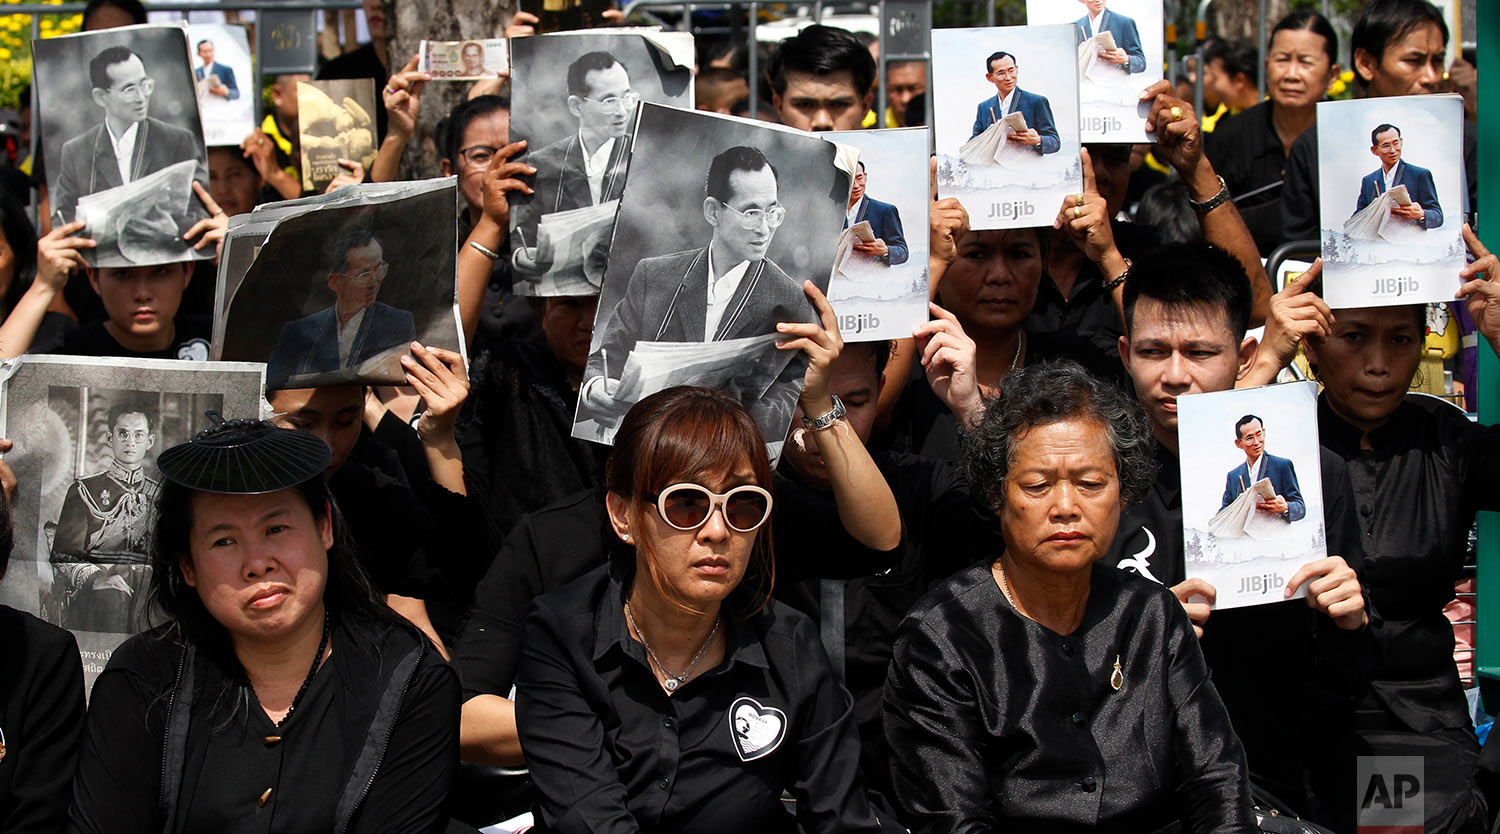 Mourners hold aloft the portraits of late Thai King Bhumibol Adulyadej during his funeral procession and royal cremation ceremony, in Bangkok, Thailand, Thursday, Oct. 26, 2017. Tearful Thais clad in black mourned on Bangkok's streets or at viewing areas around the nation Thursday as elaborate funeral ceremonies steeped in centuries of royal tradition were held for King Bhumibol following a year of mourning. (AP Photo/Sakchai Lalit)